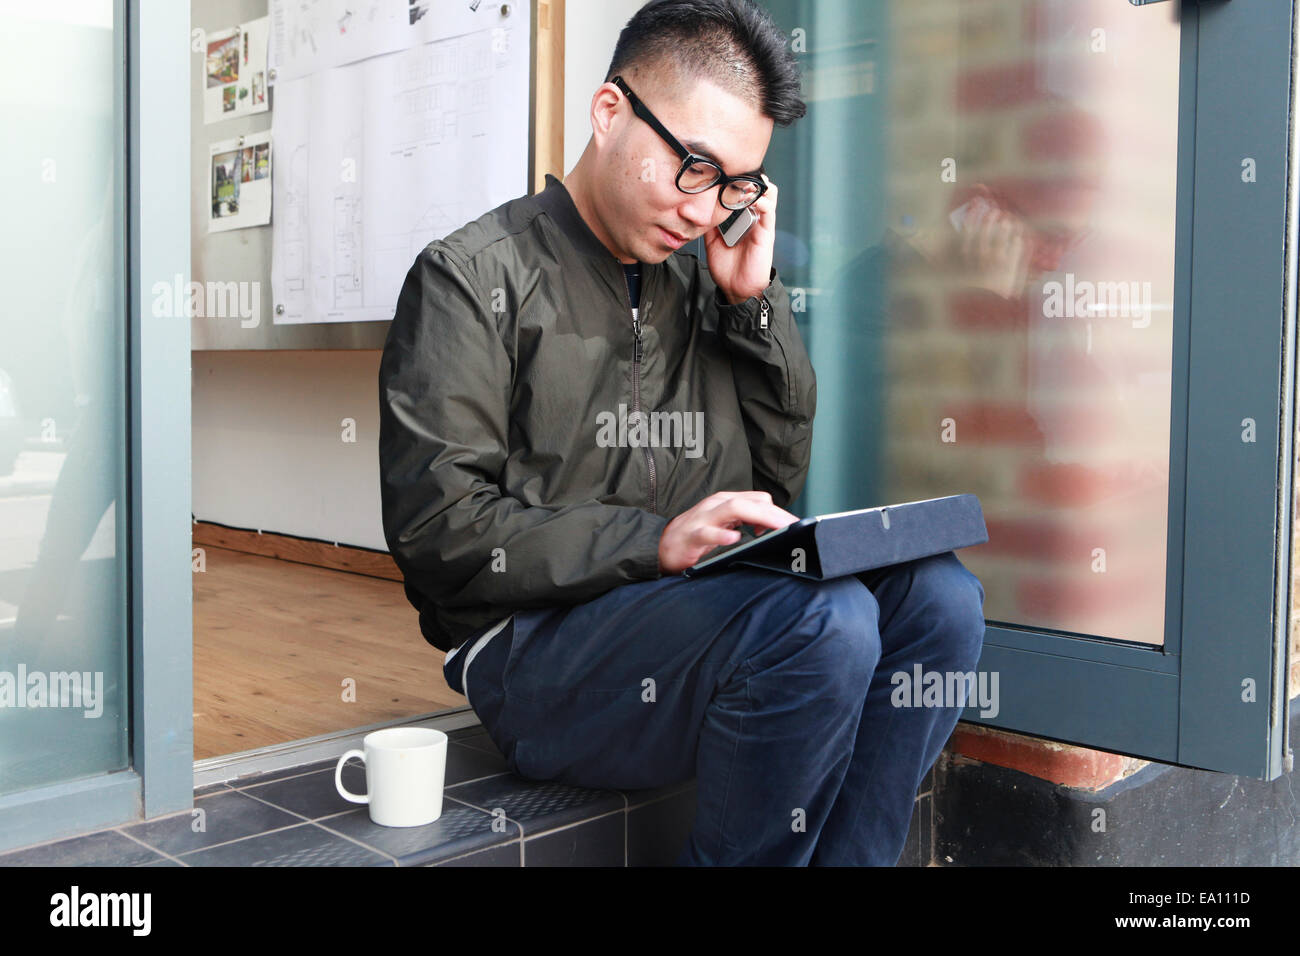 Male architect using smartphone and digital tablet on office step - Stock Image